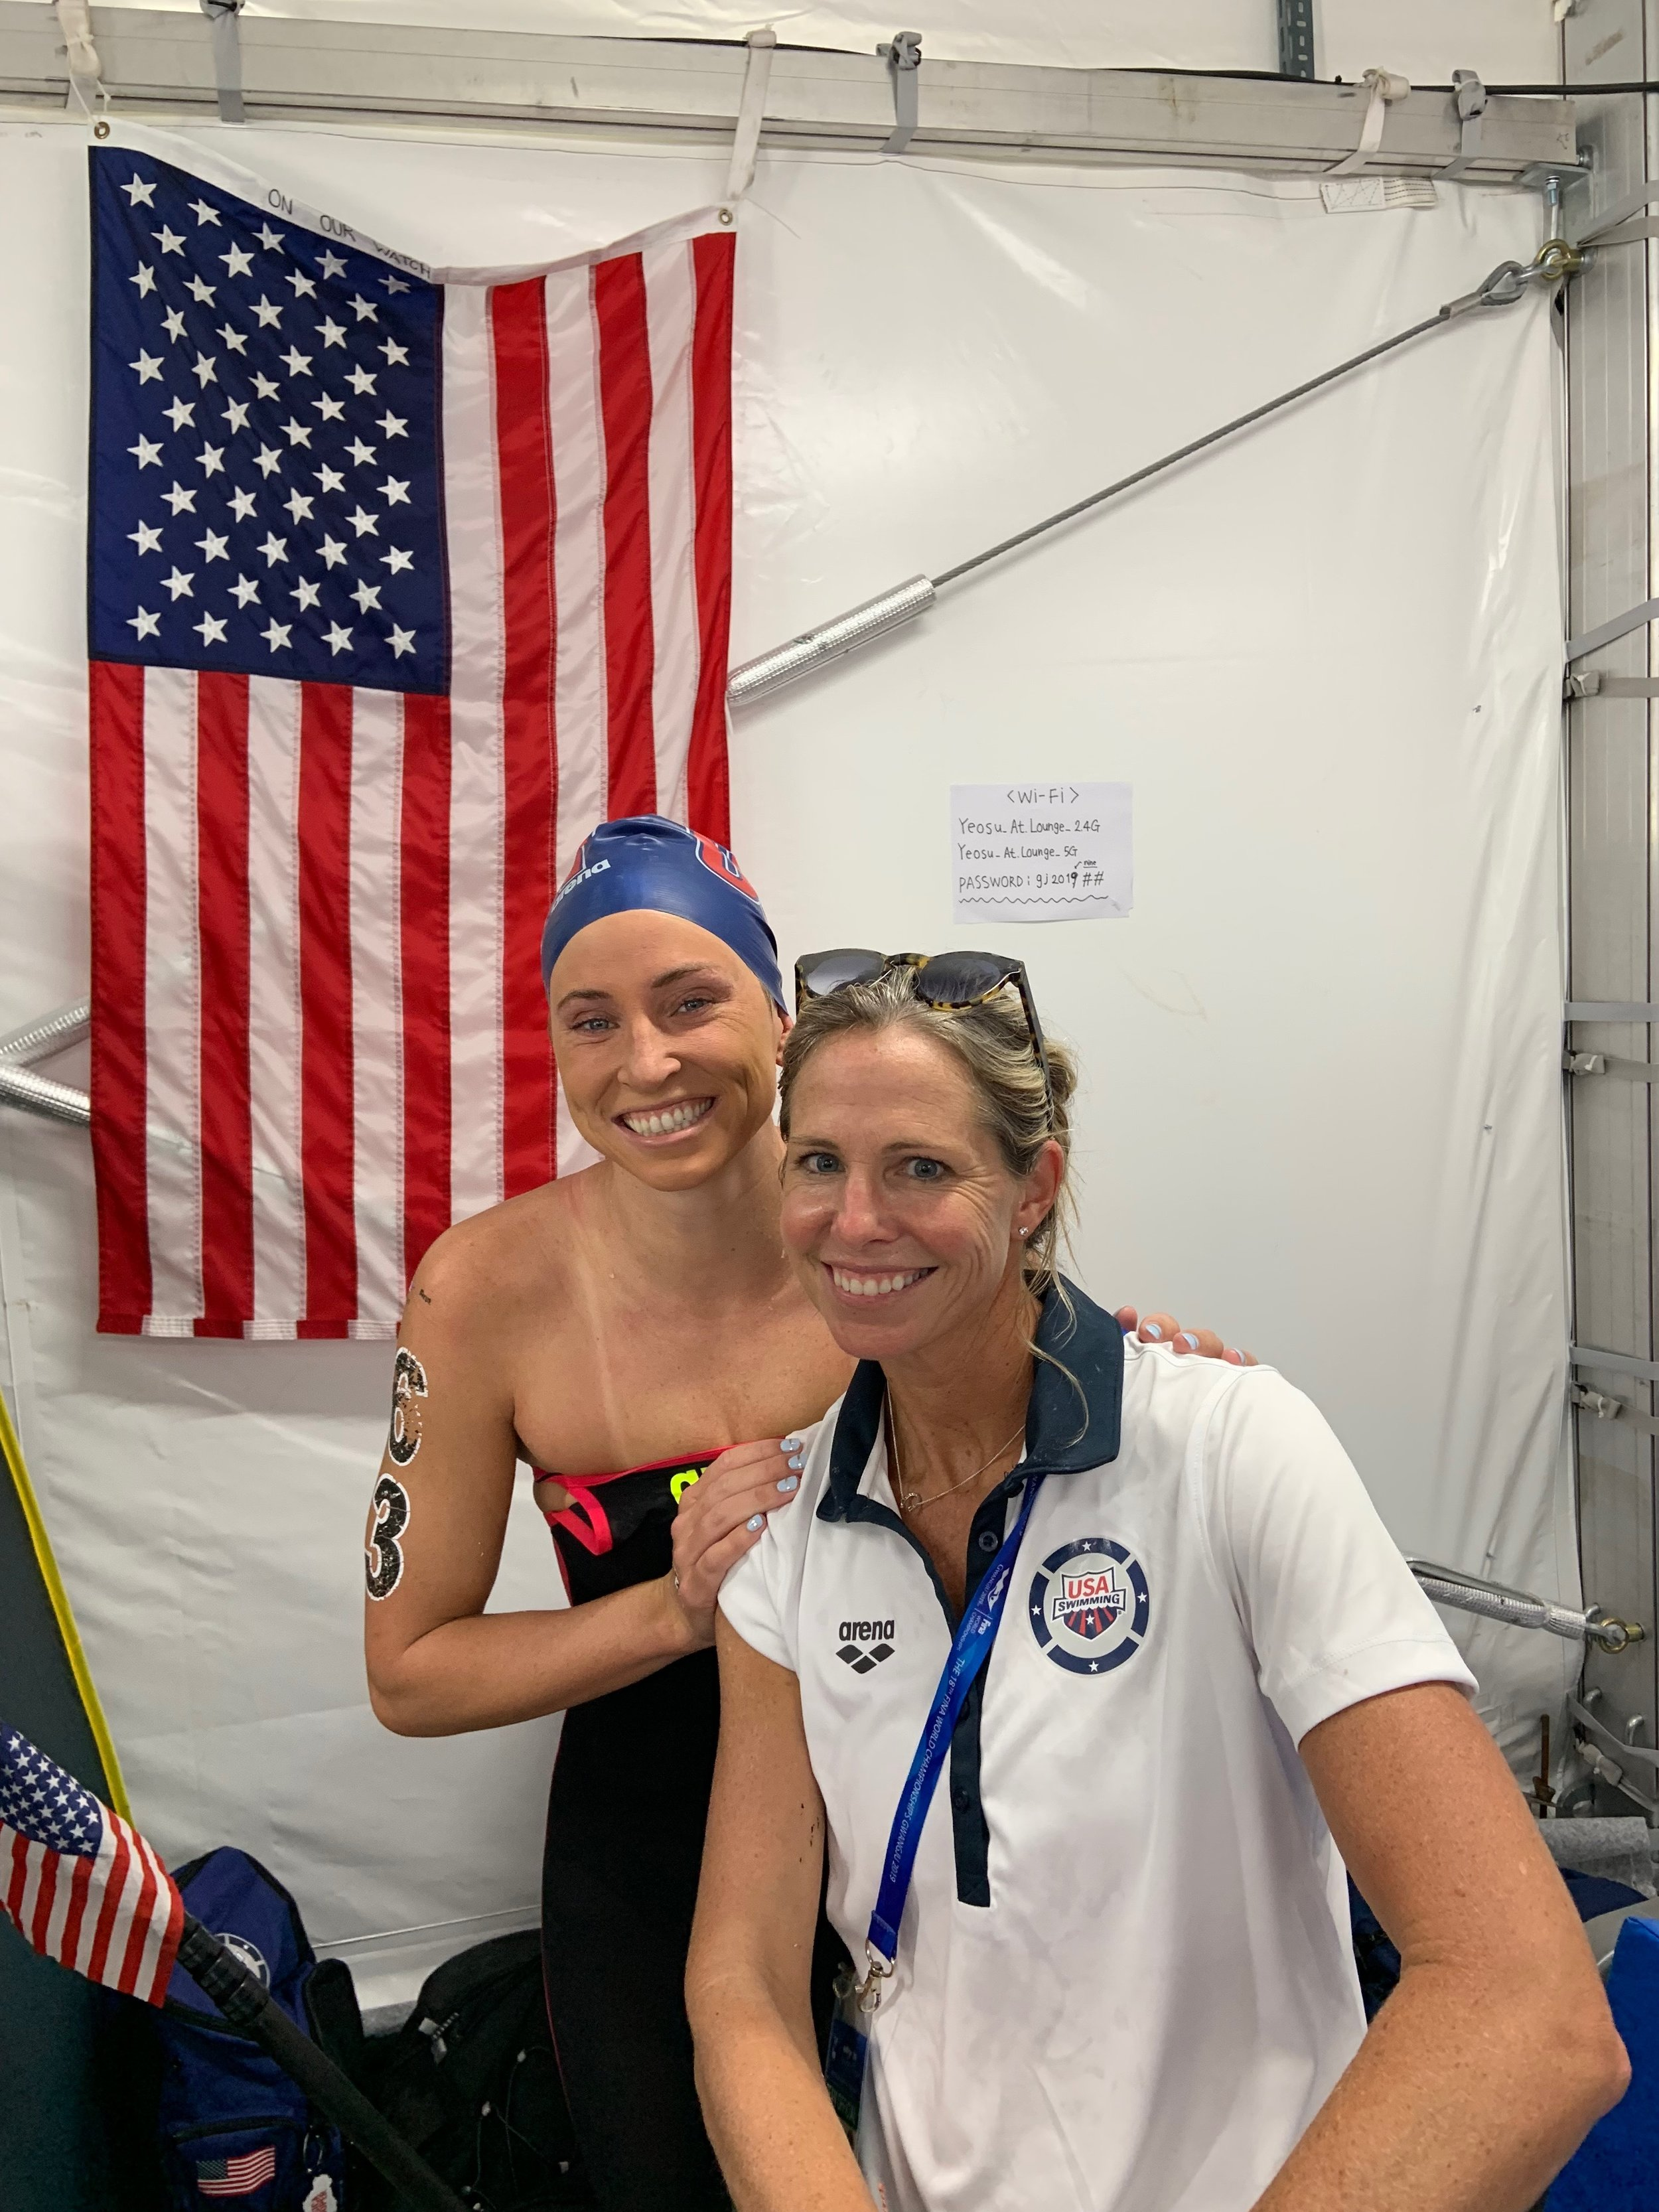 Post 10K race at the FINA 2019 World Championship with personal coach / U.S. Open Water Head Coach Catherine Vogt-Kase and Haley.